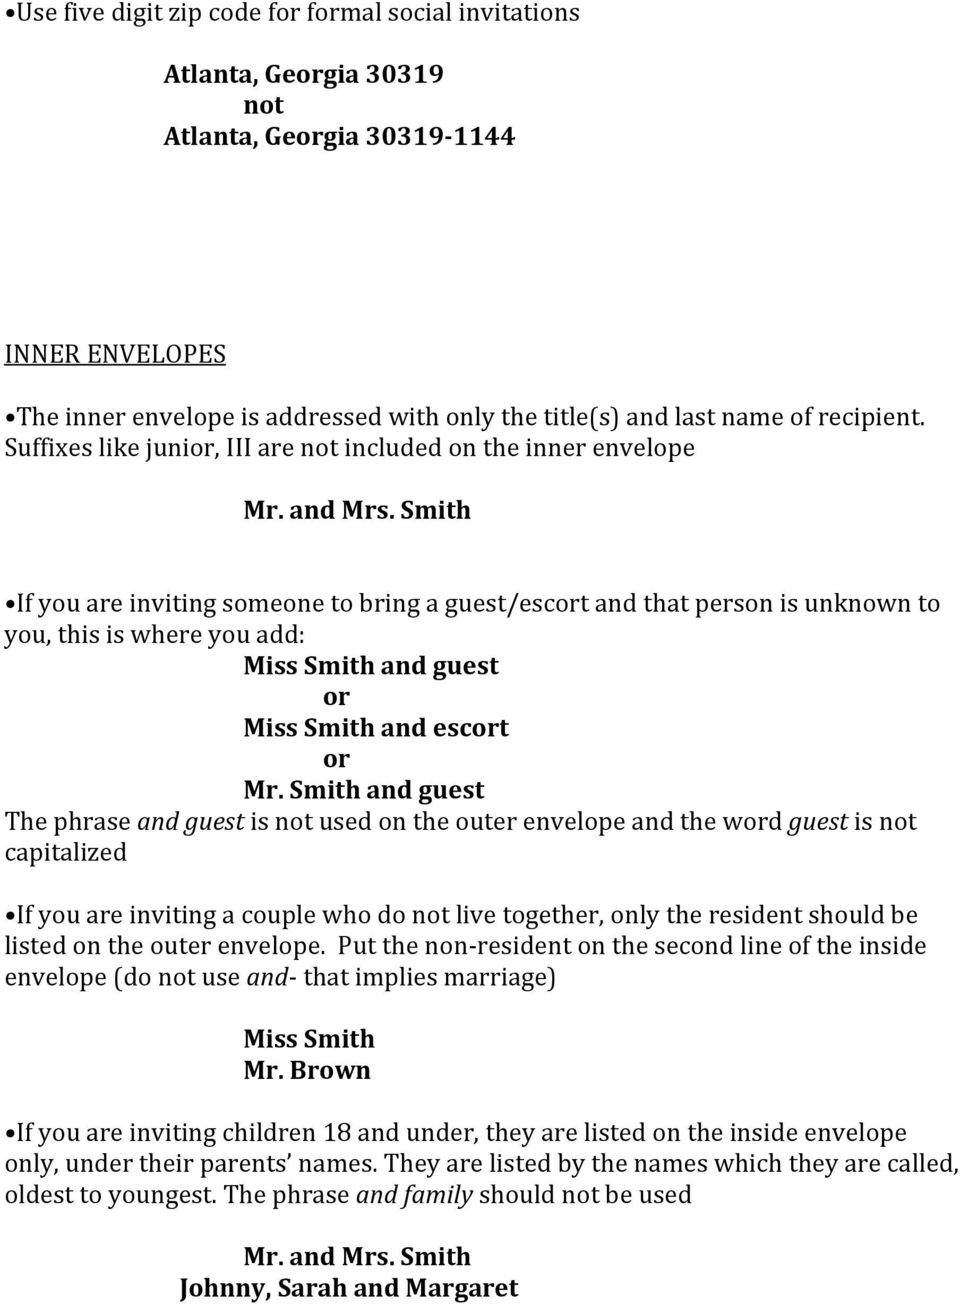 Suffixes like junior, III are not included on the inner envelope If you are inviting someone to bring a guest/escort and that person is unknown to you, this is where you add: Miss Smith and guest or